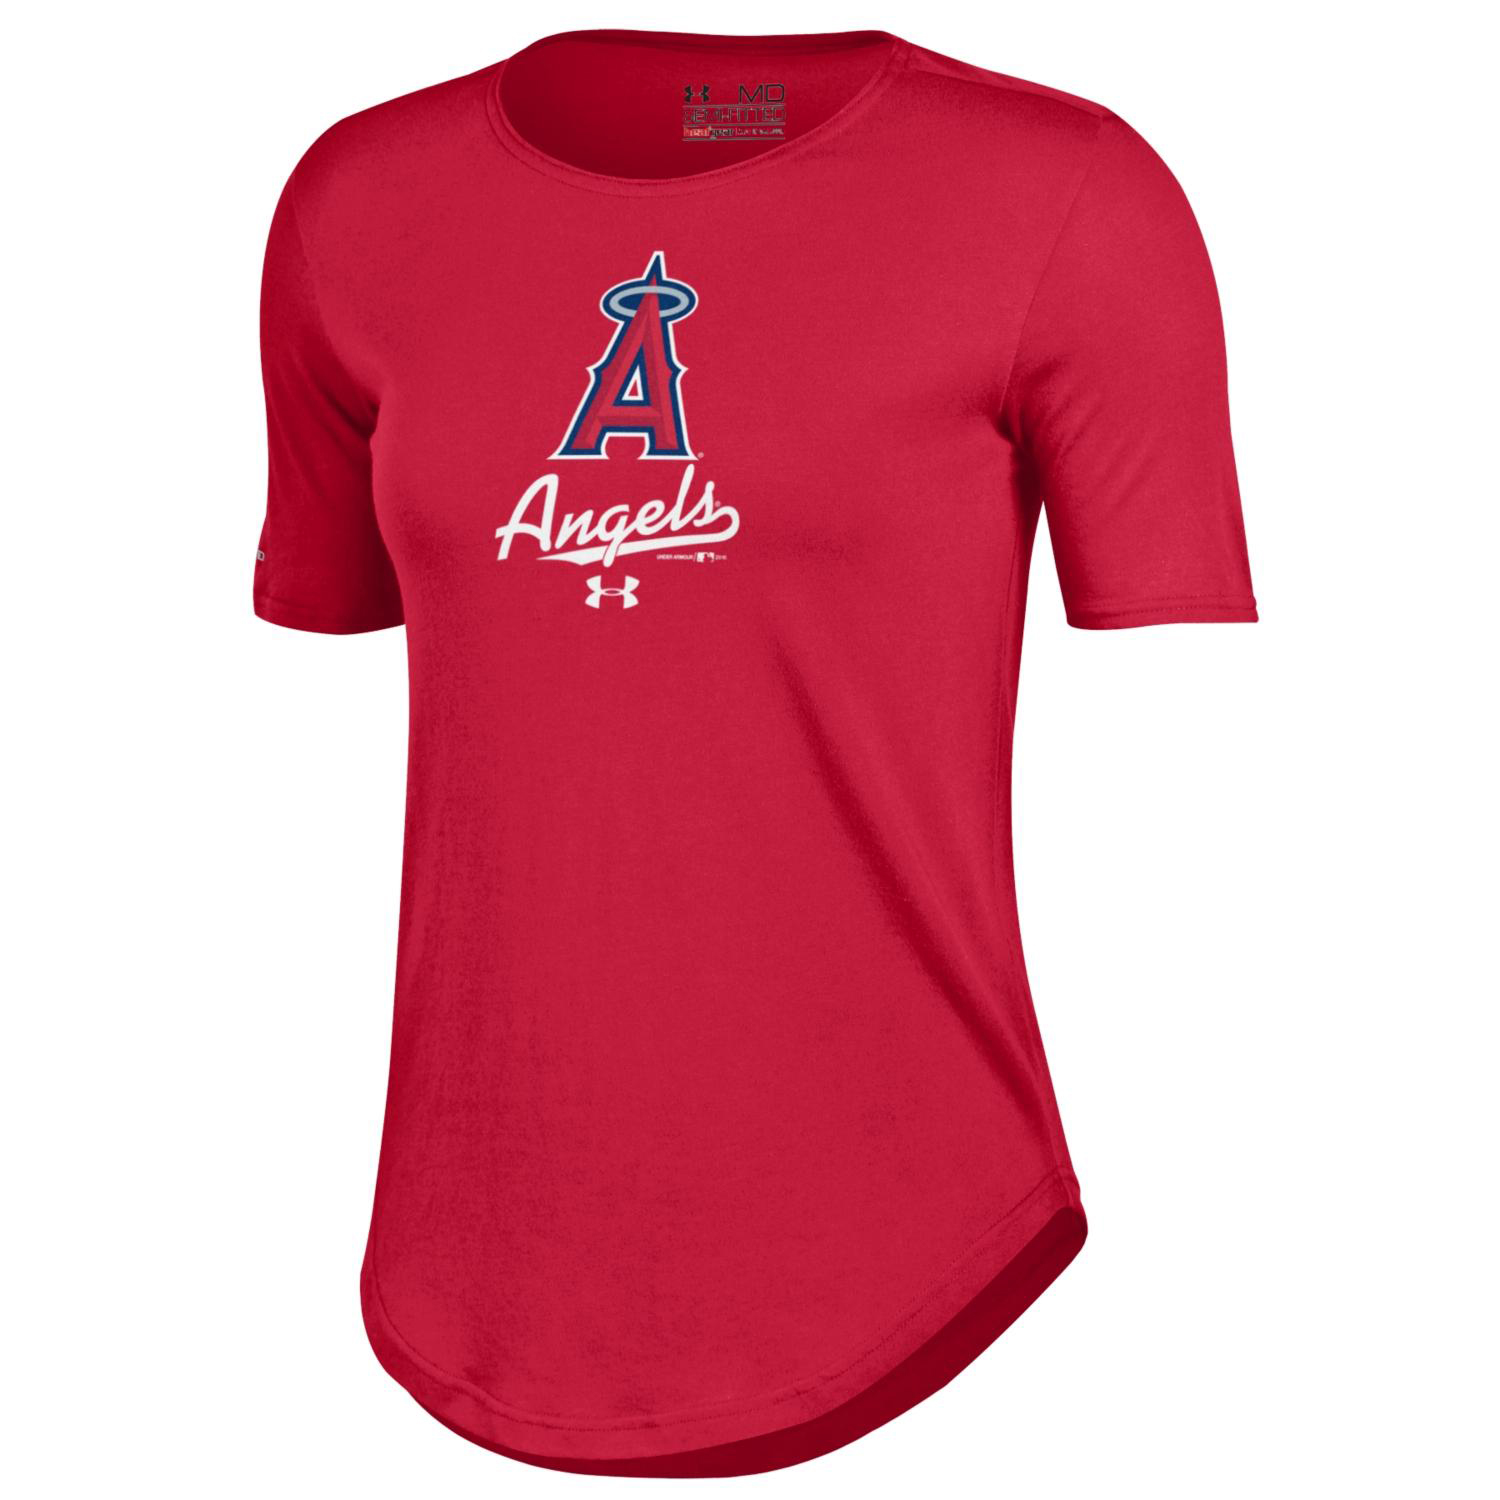 Los Angeles Angels Under Armour Women's Crew Performance T-Shirt - Red